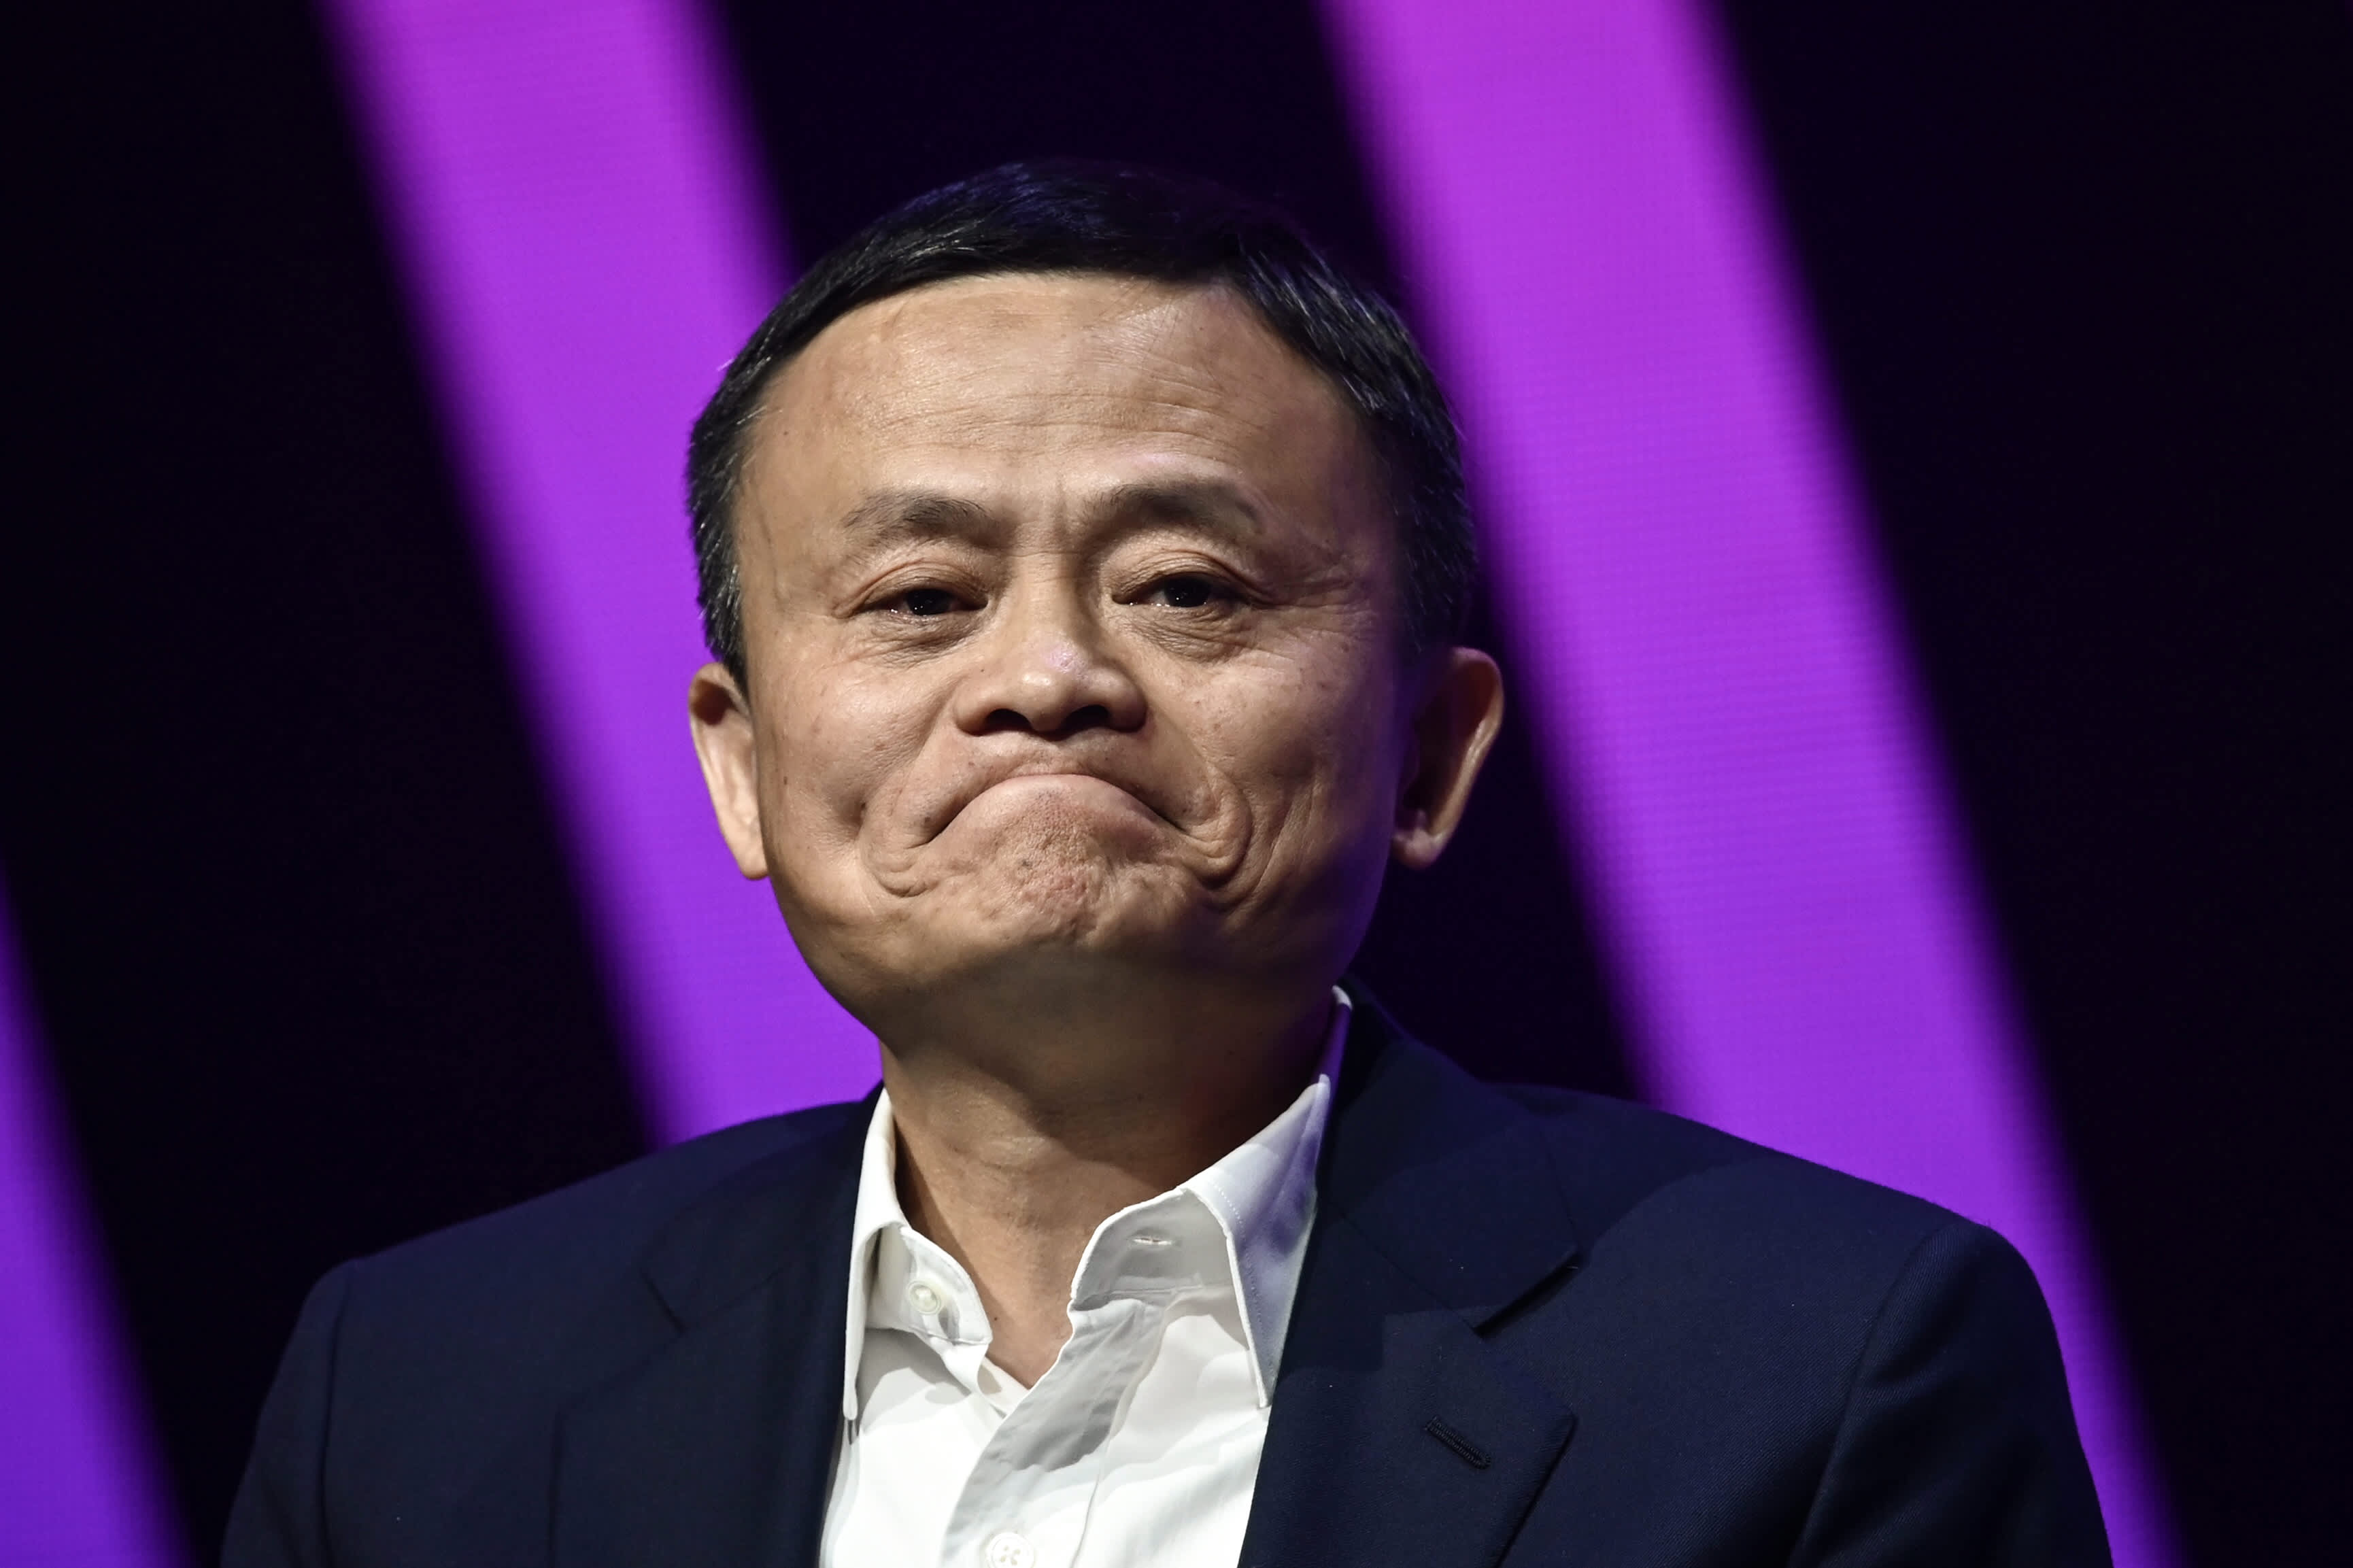 Alibaba founder Jack Ma is lying low for the time being, but he's not missing